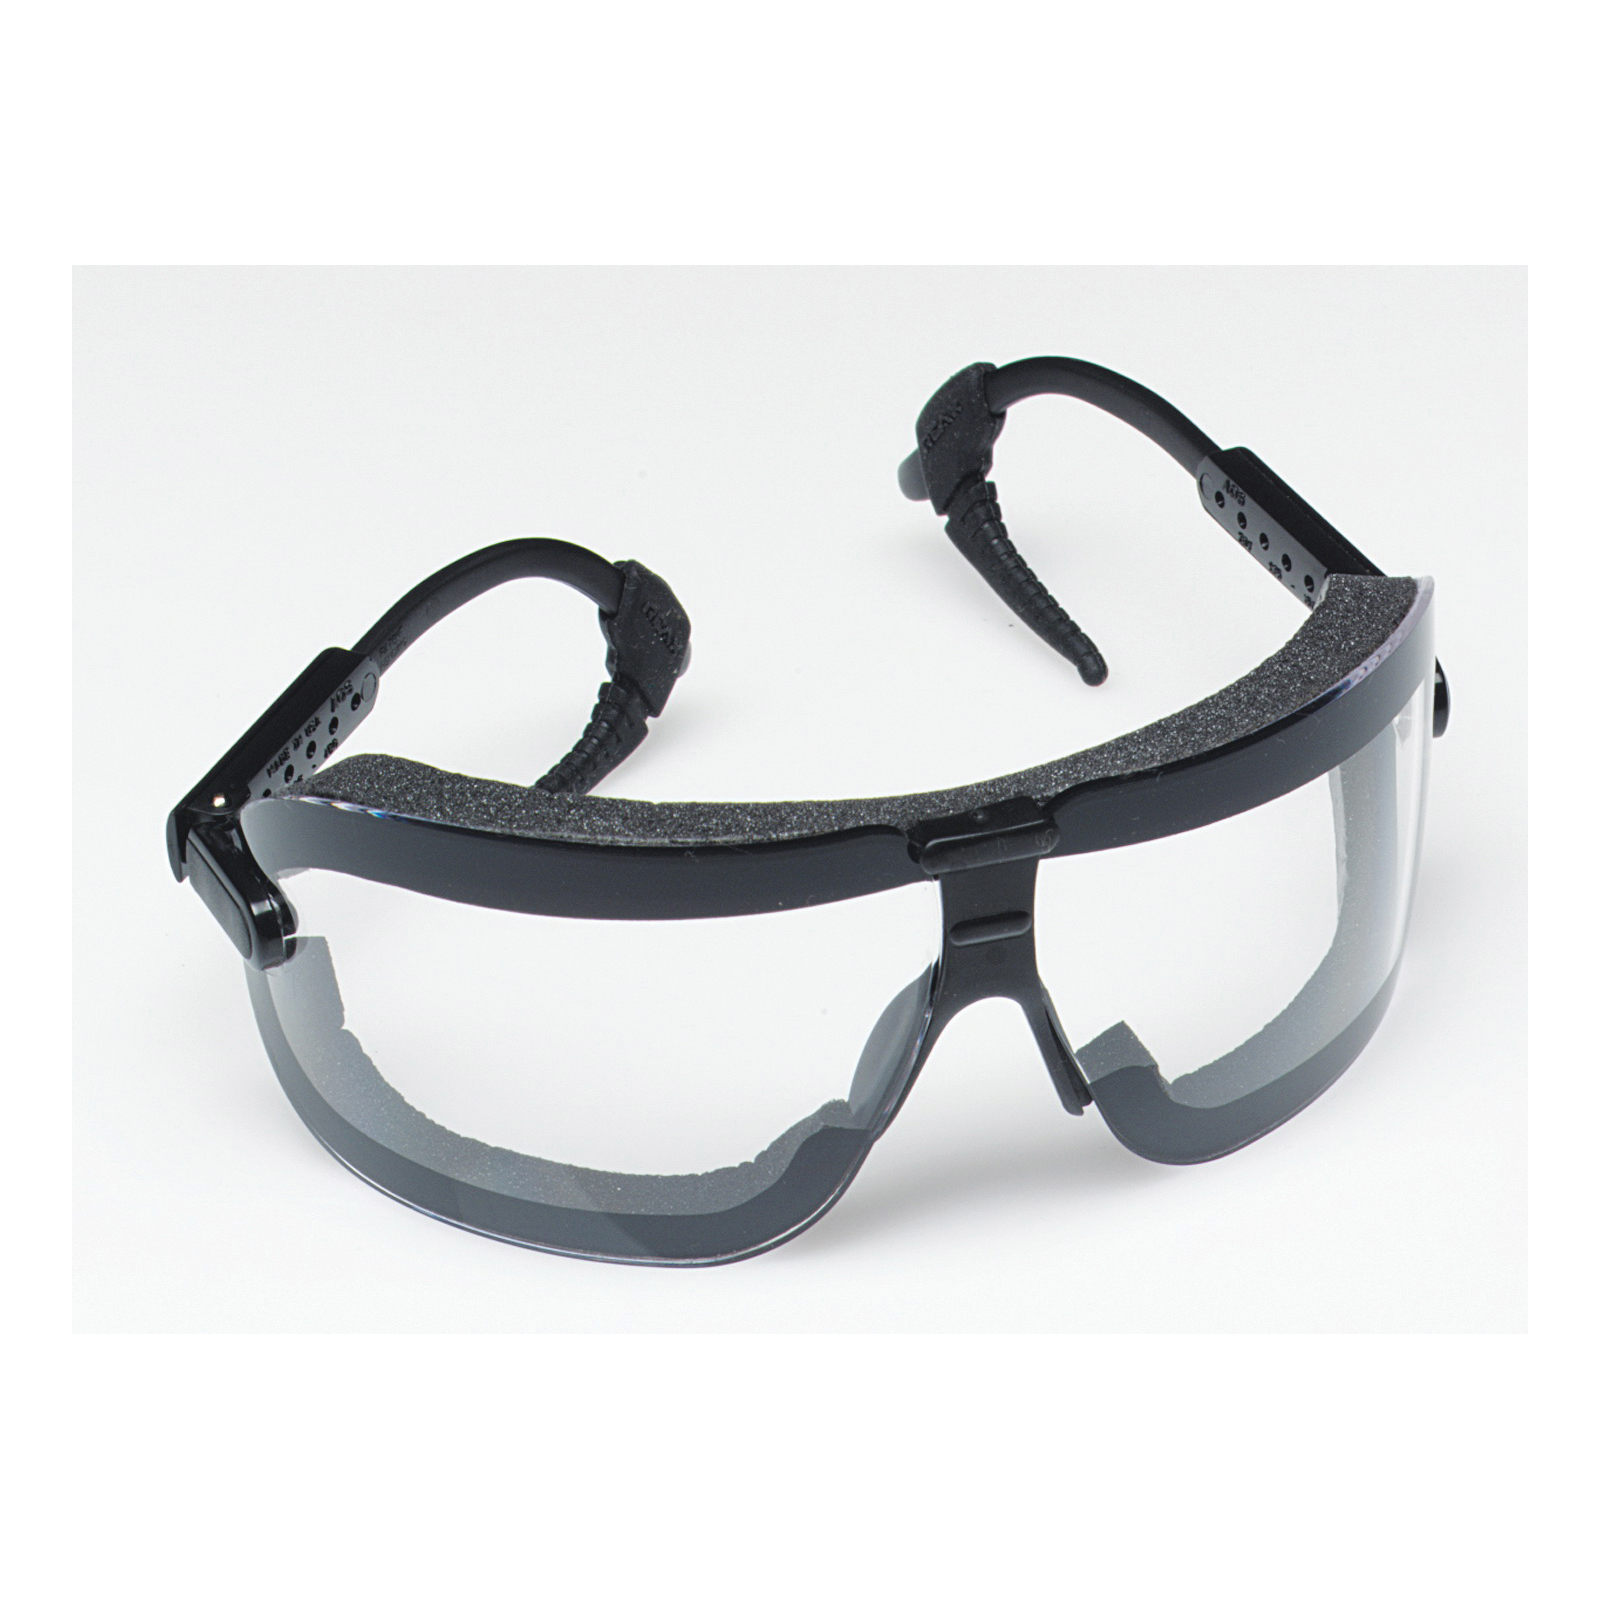 3M™ Fectoggles™ 078371-62321 Lightweight Safety Goggles, Anti-Fog/Anti-Scratch Clear Polycarbonate Lens, 99.9% UV Protection, Elastic Strap, ANSI Z87.1-2015, CSA Z94.3